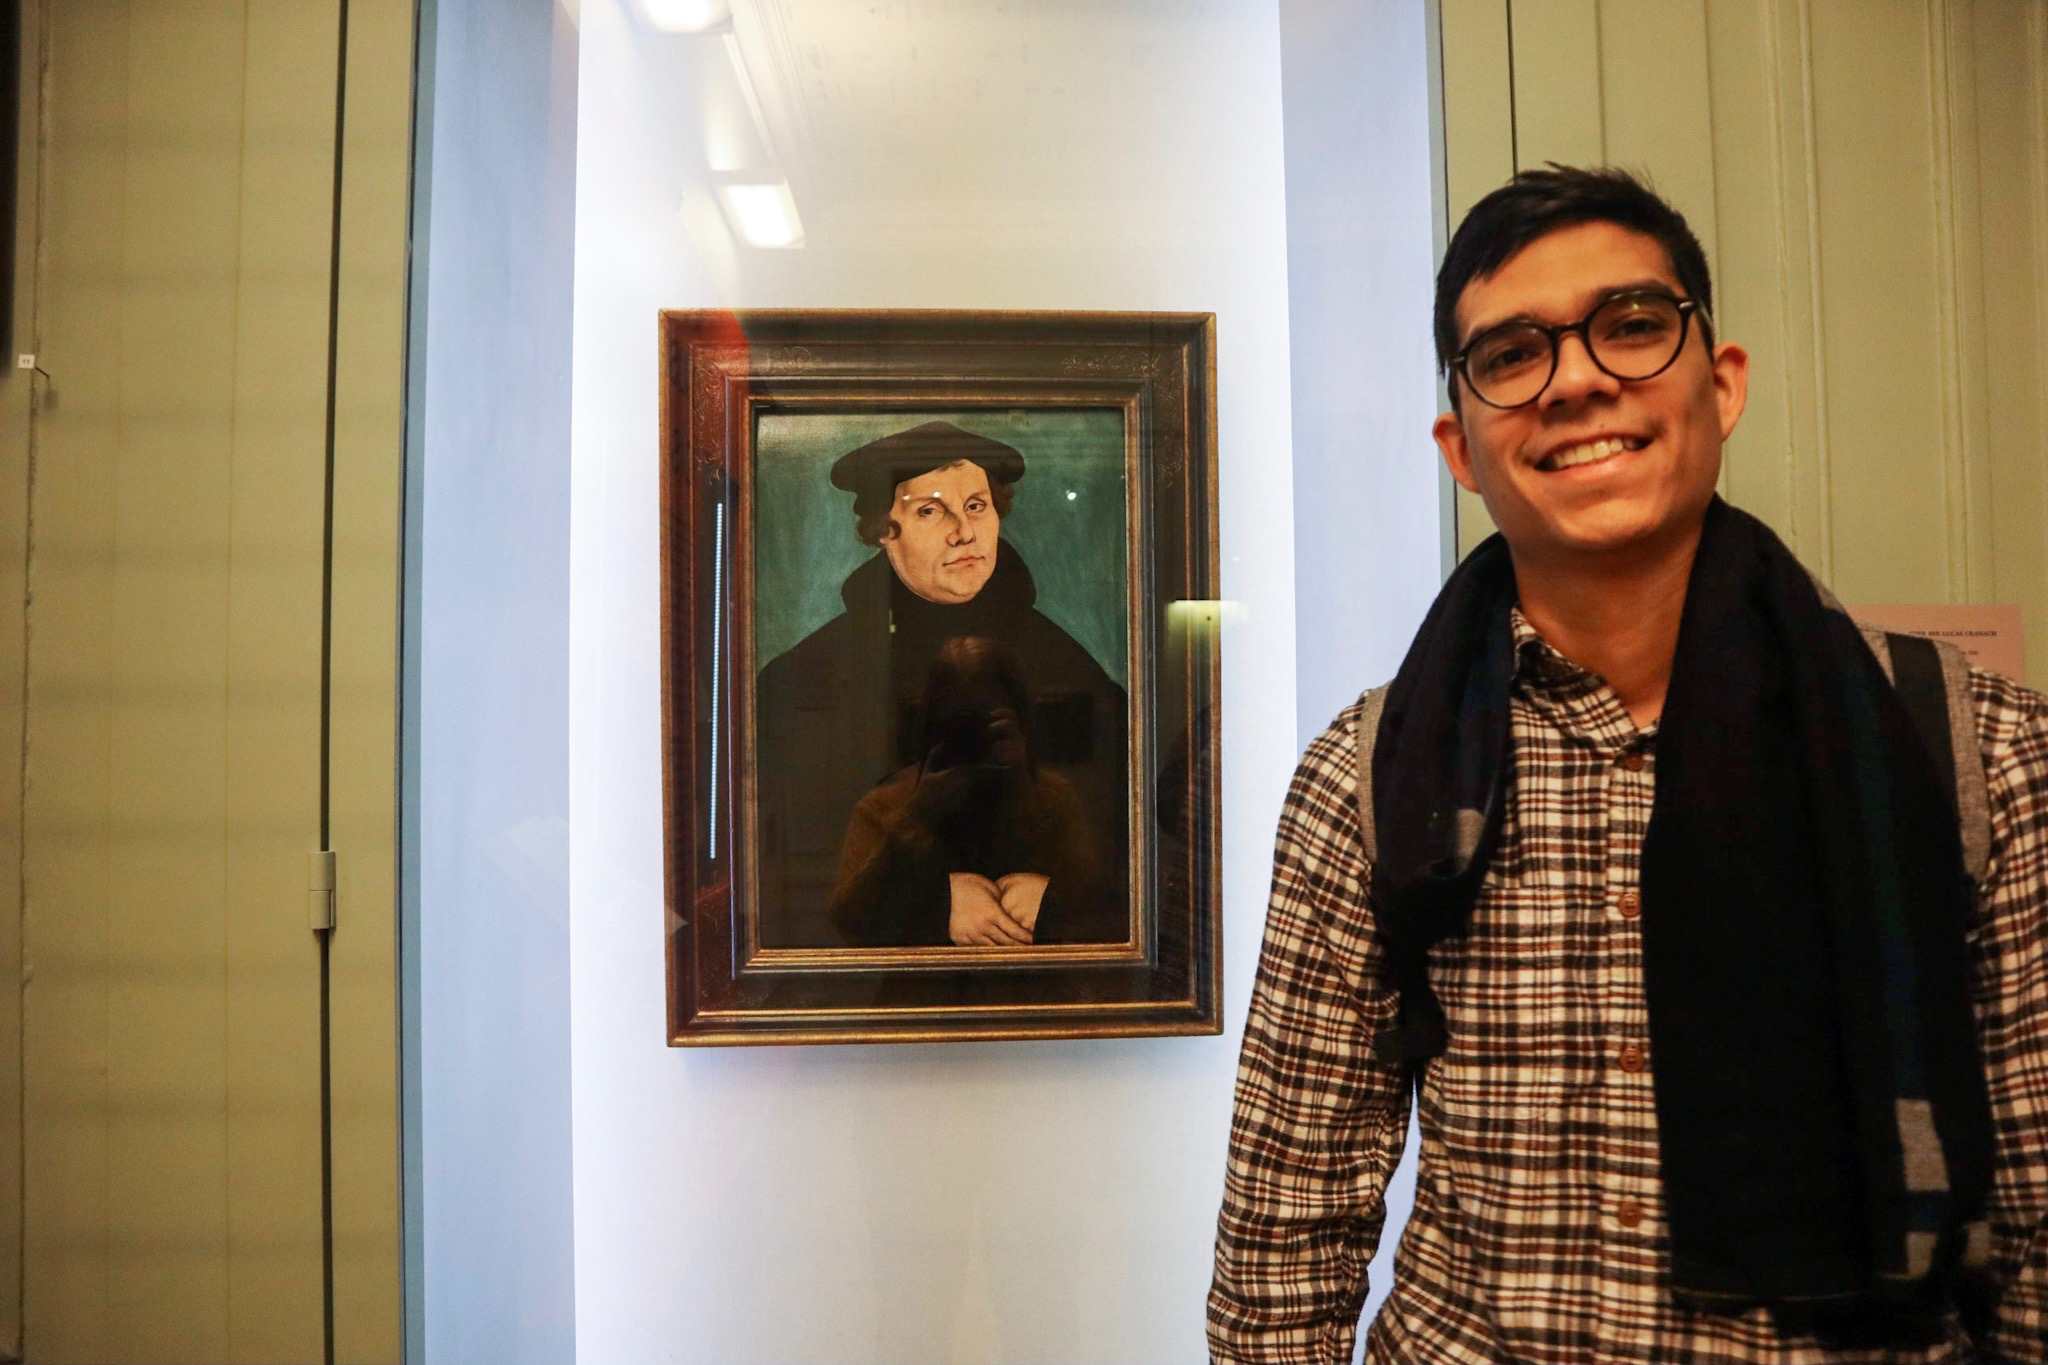 The famous portrait of Martin Luther